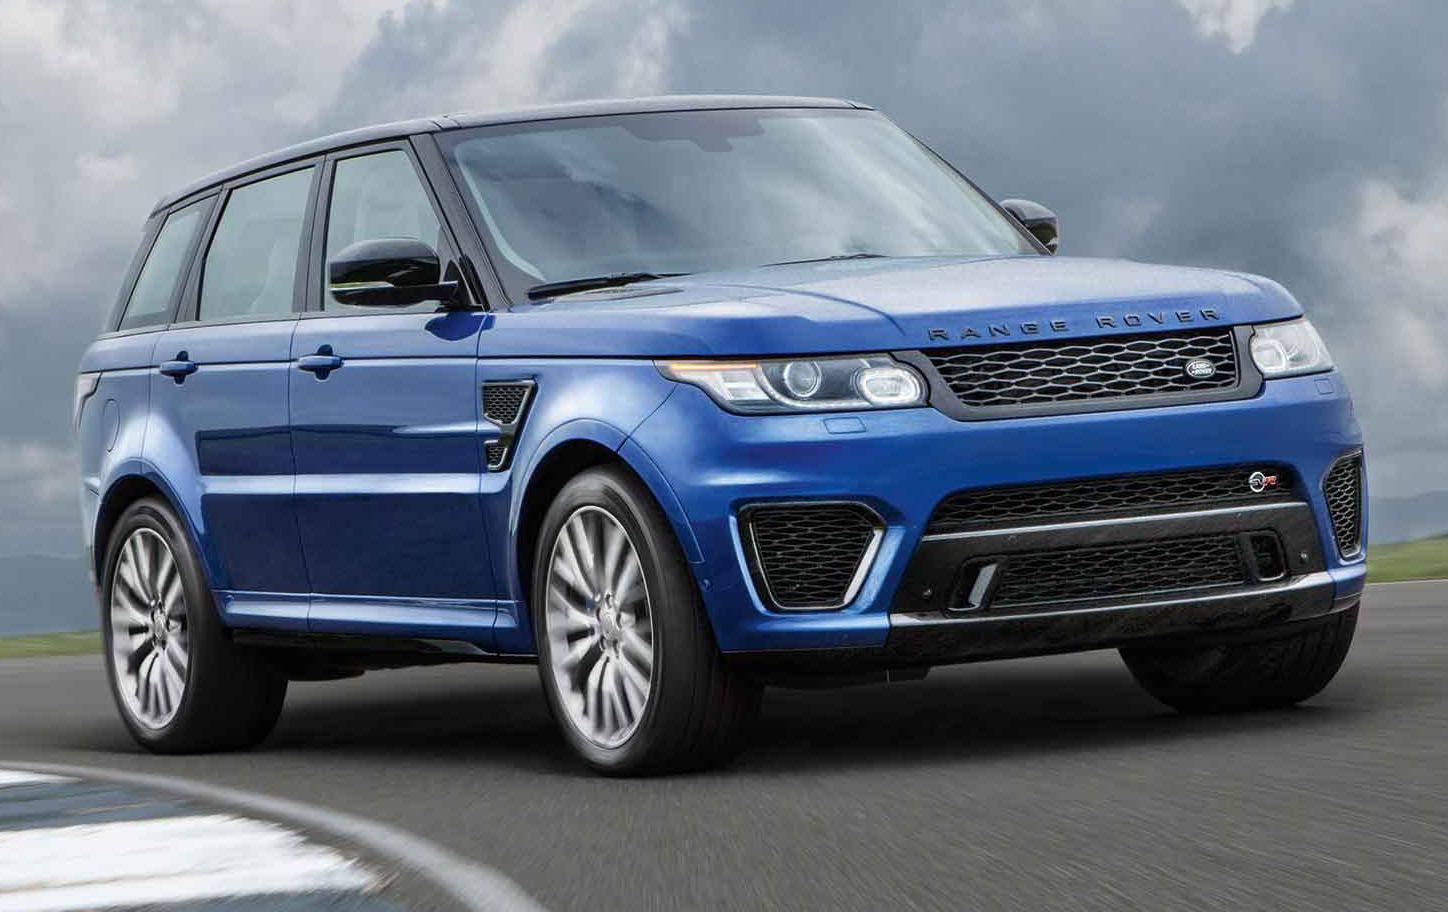 2015 land rover range rover sport svr review we drive the fastest loudest land rover ever. Black Bedroom Furniture Sets. Home Design Ideas